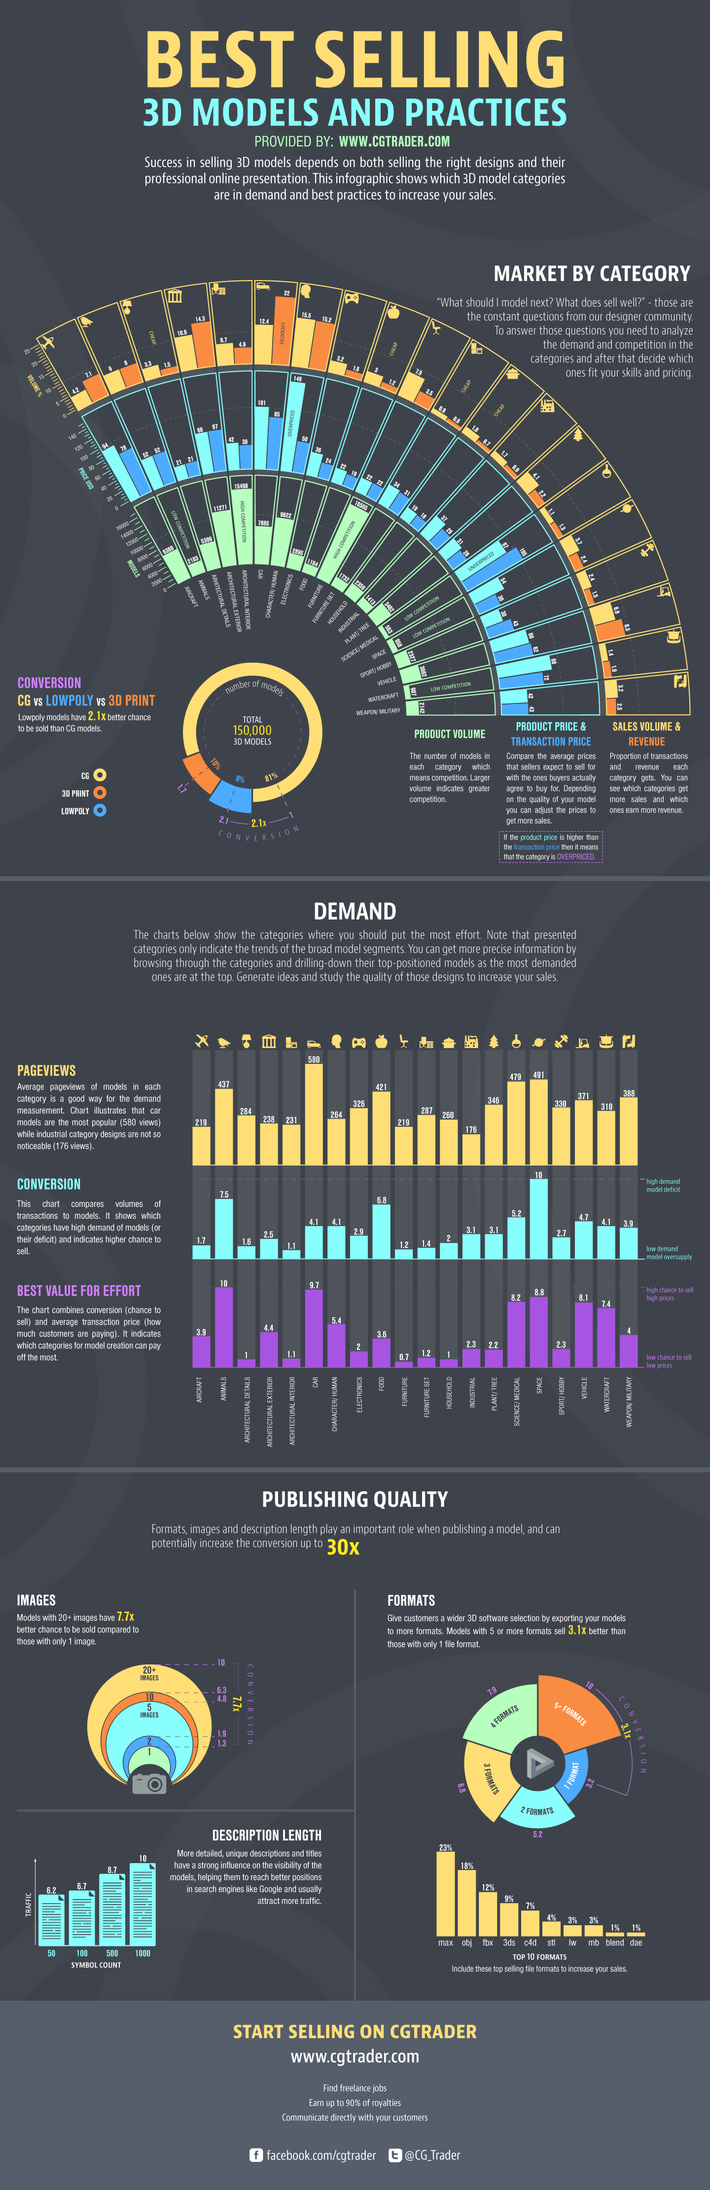 Infographic best selling 3d models and practices blog Best 3d models